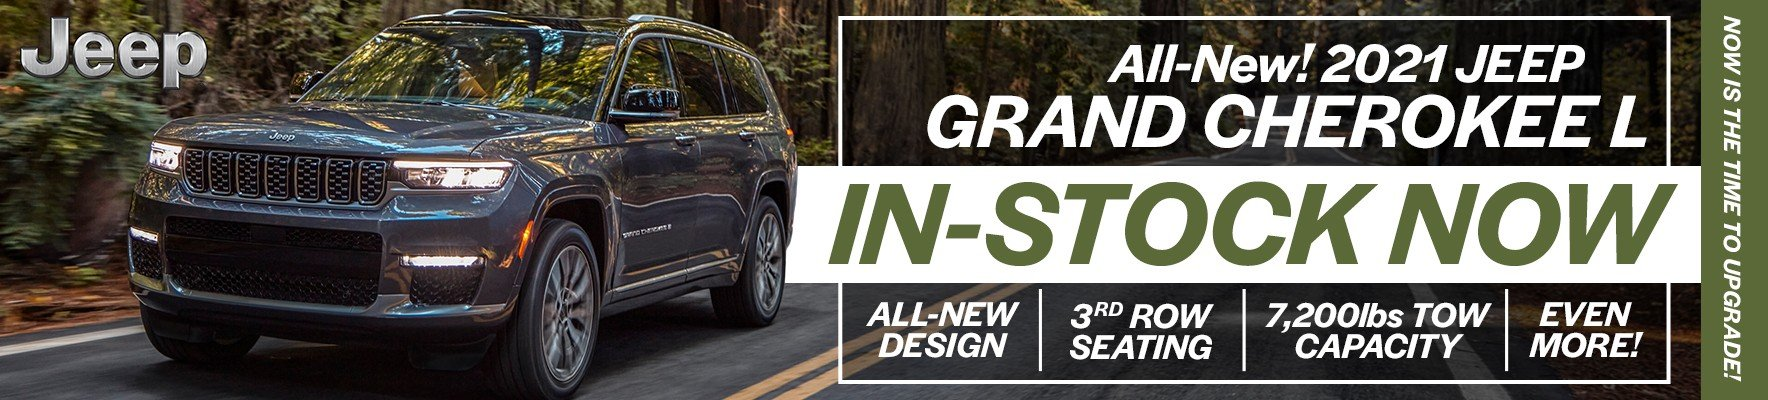 The All-New Jeep Grand Cherokee L is In-Stock Now